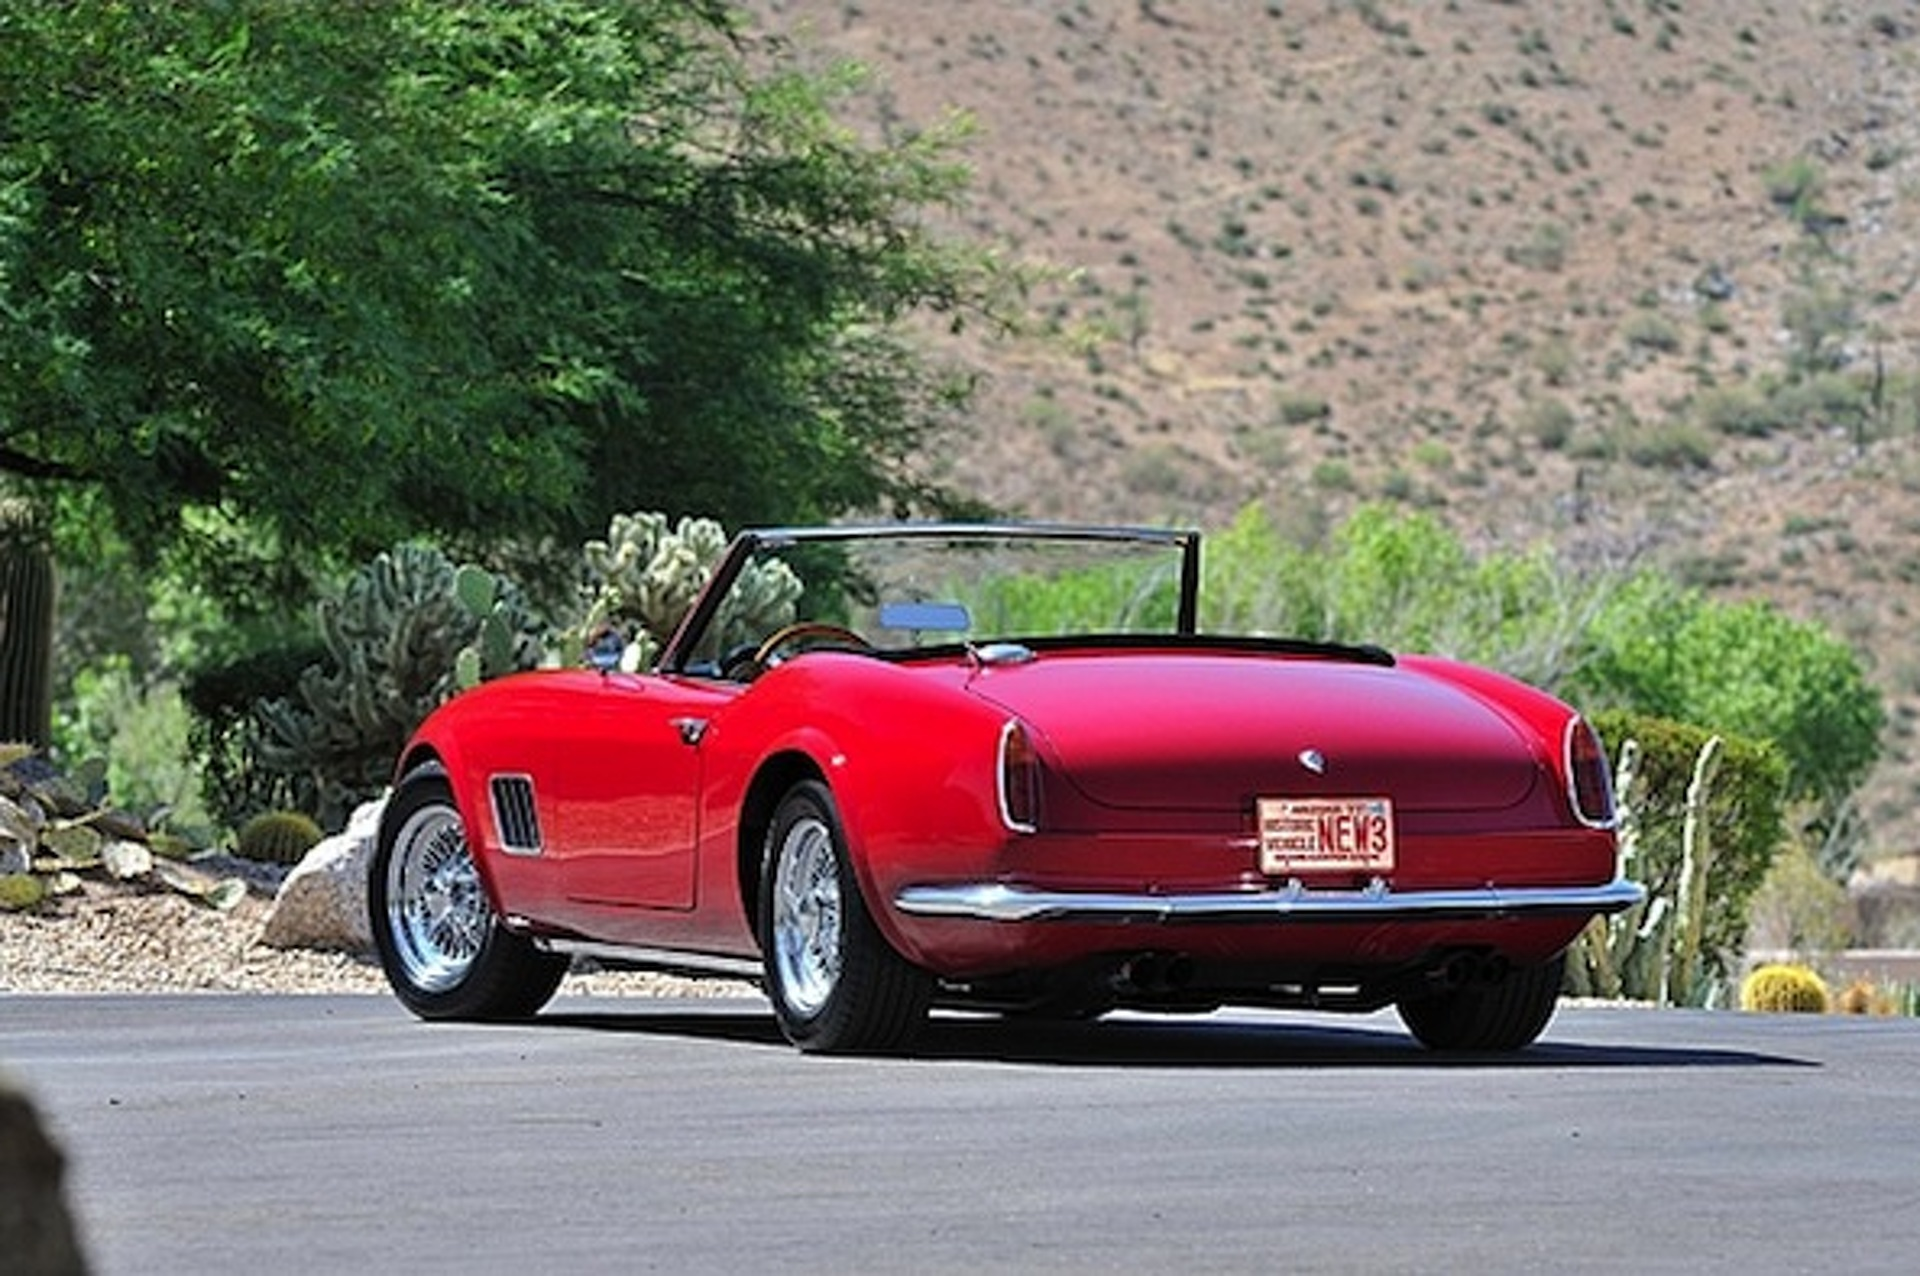 Ferris Bueller's Infamous Ferrari Headed for Auction